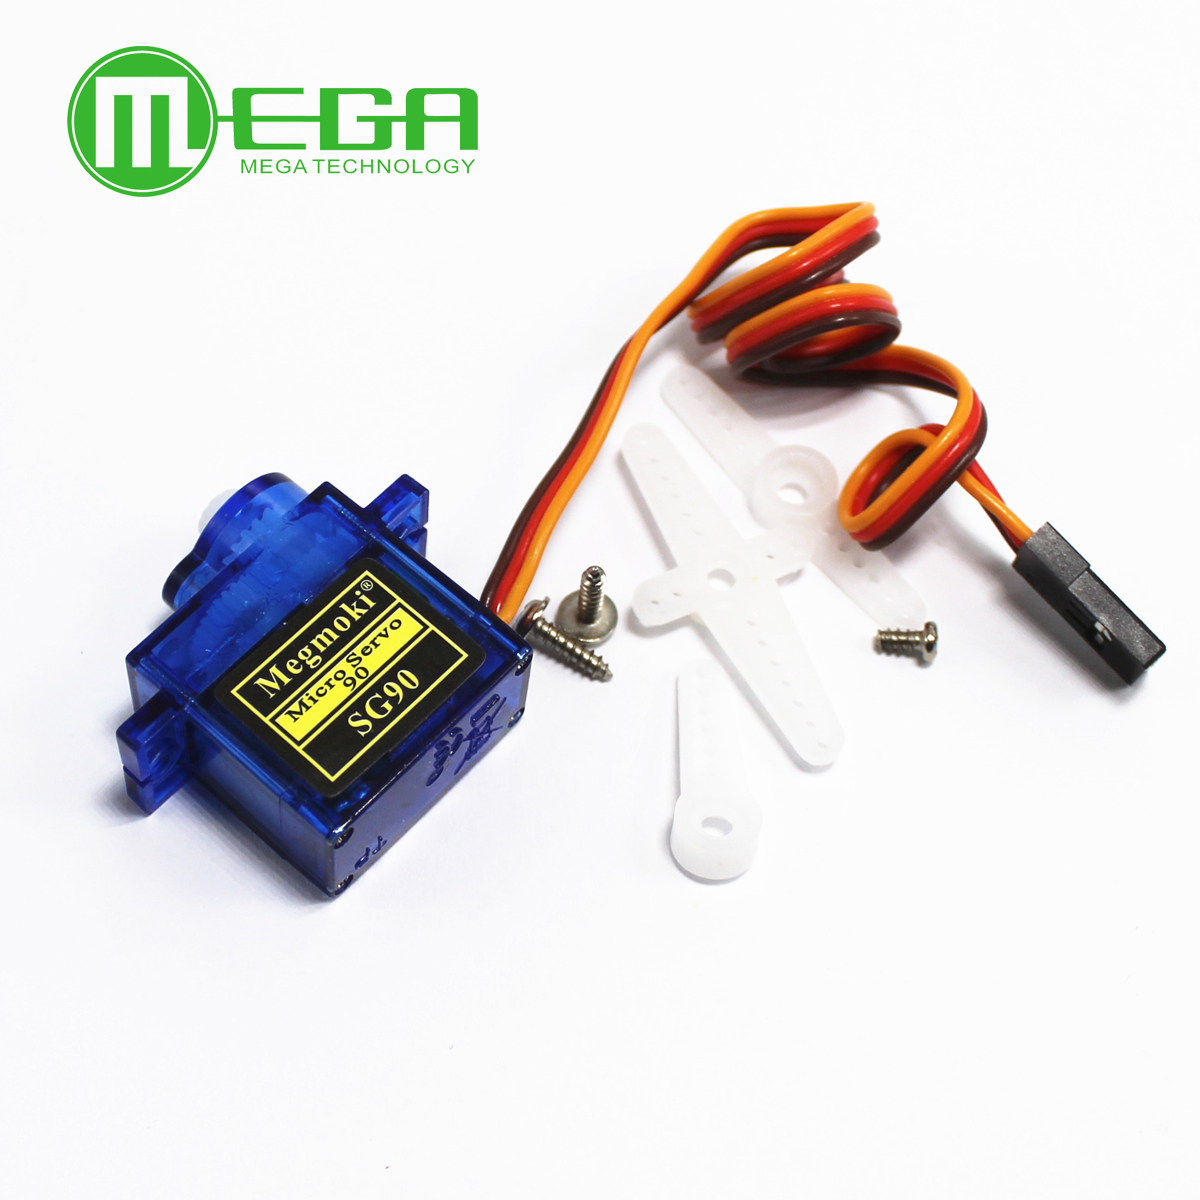 Rc Mini Micro 9g 1 6KG Servo SG90 for RC 250 450 Helicopter Airplane Car